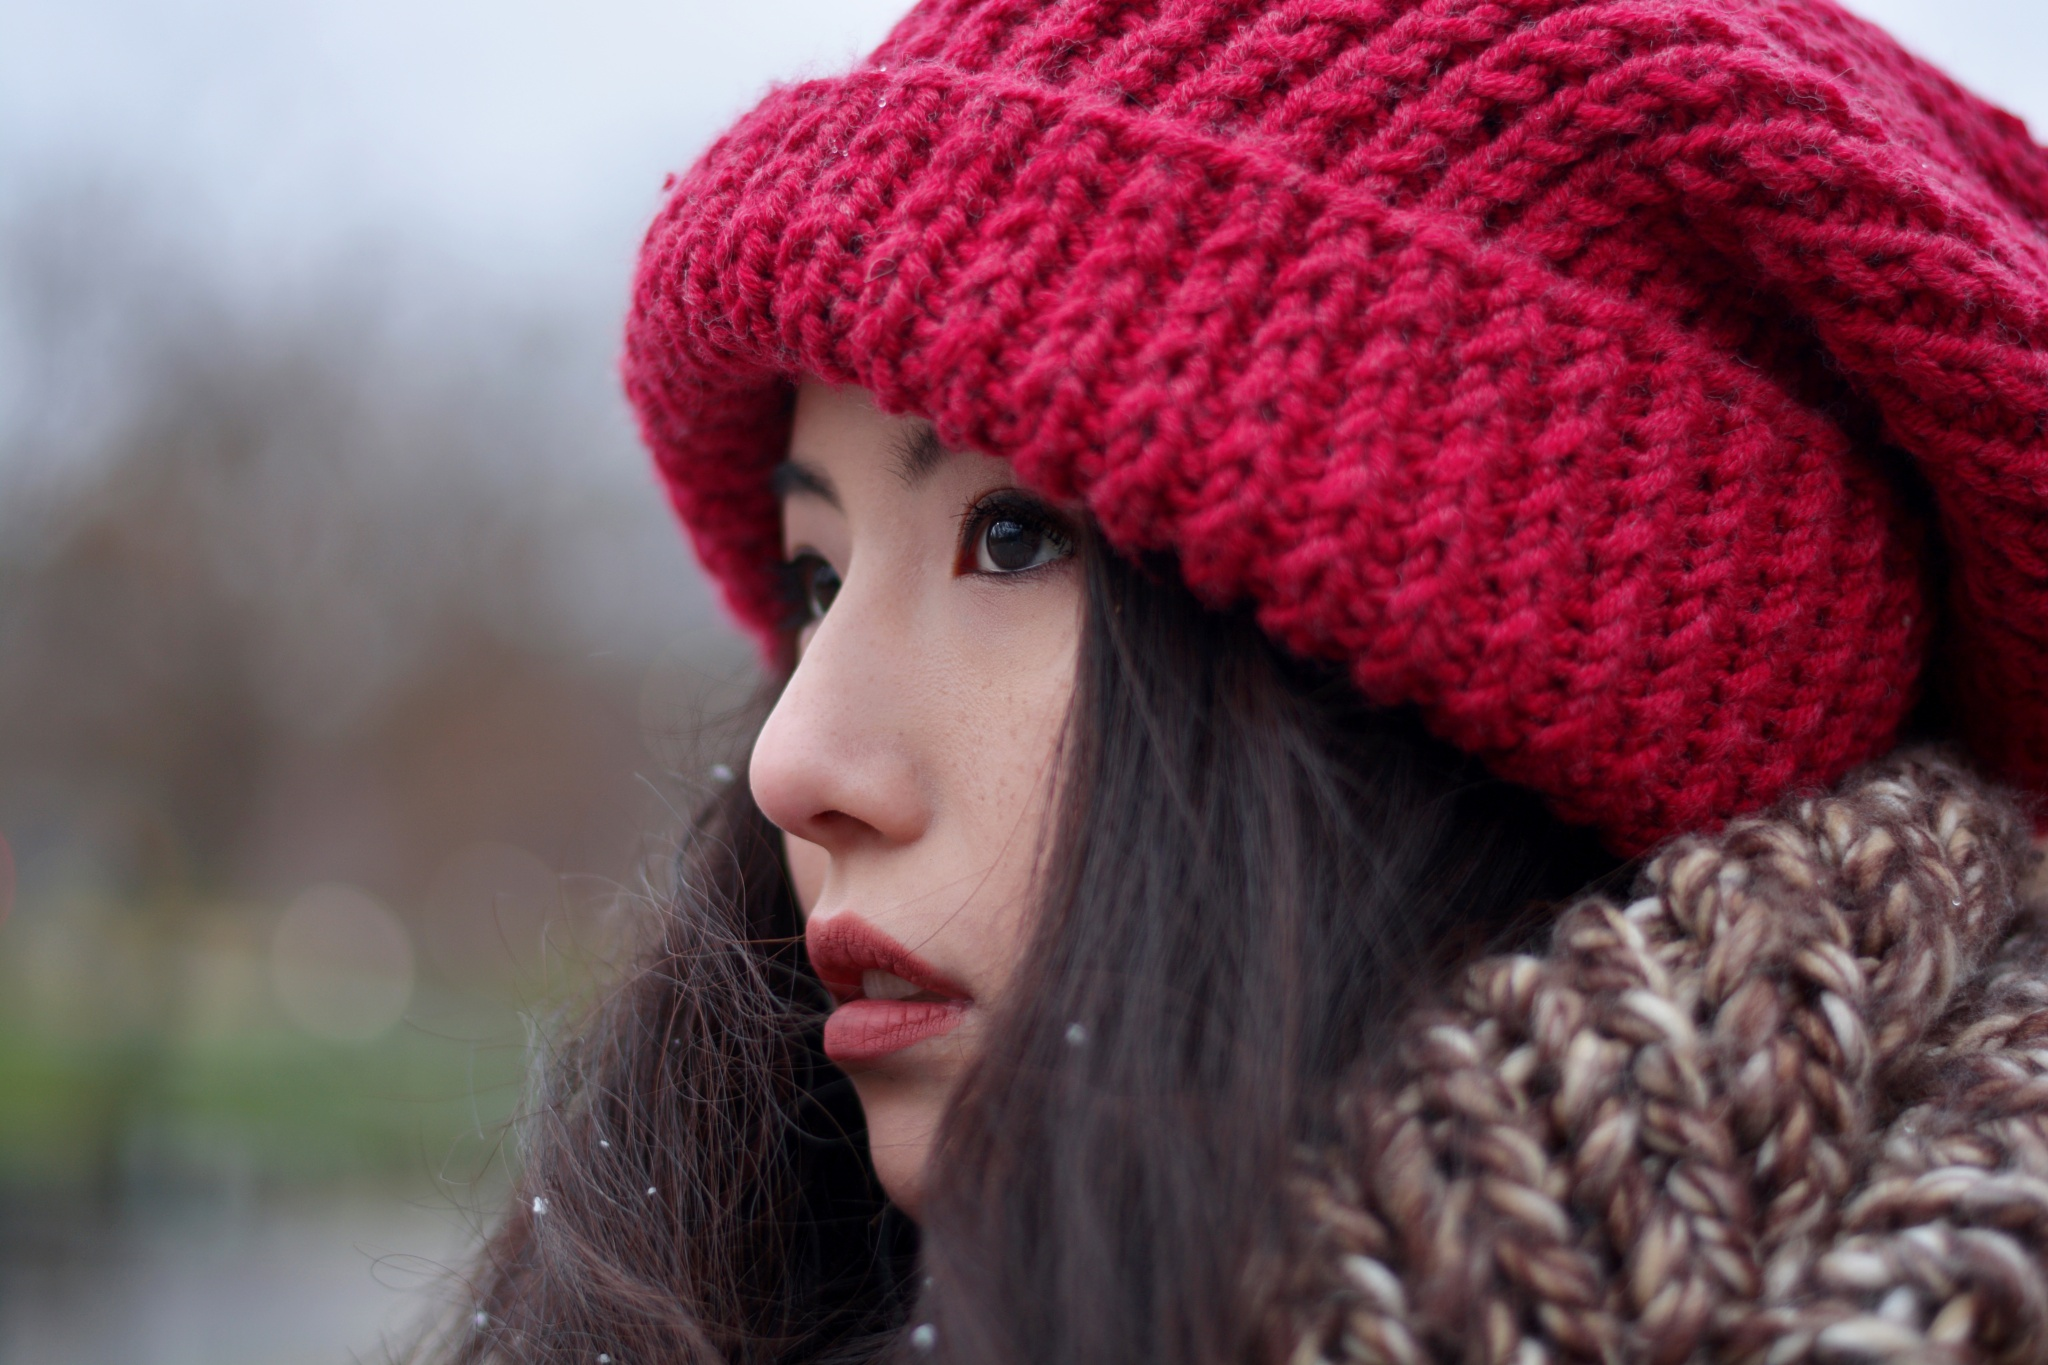 Ah..snow, face and red hat by Yoko D